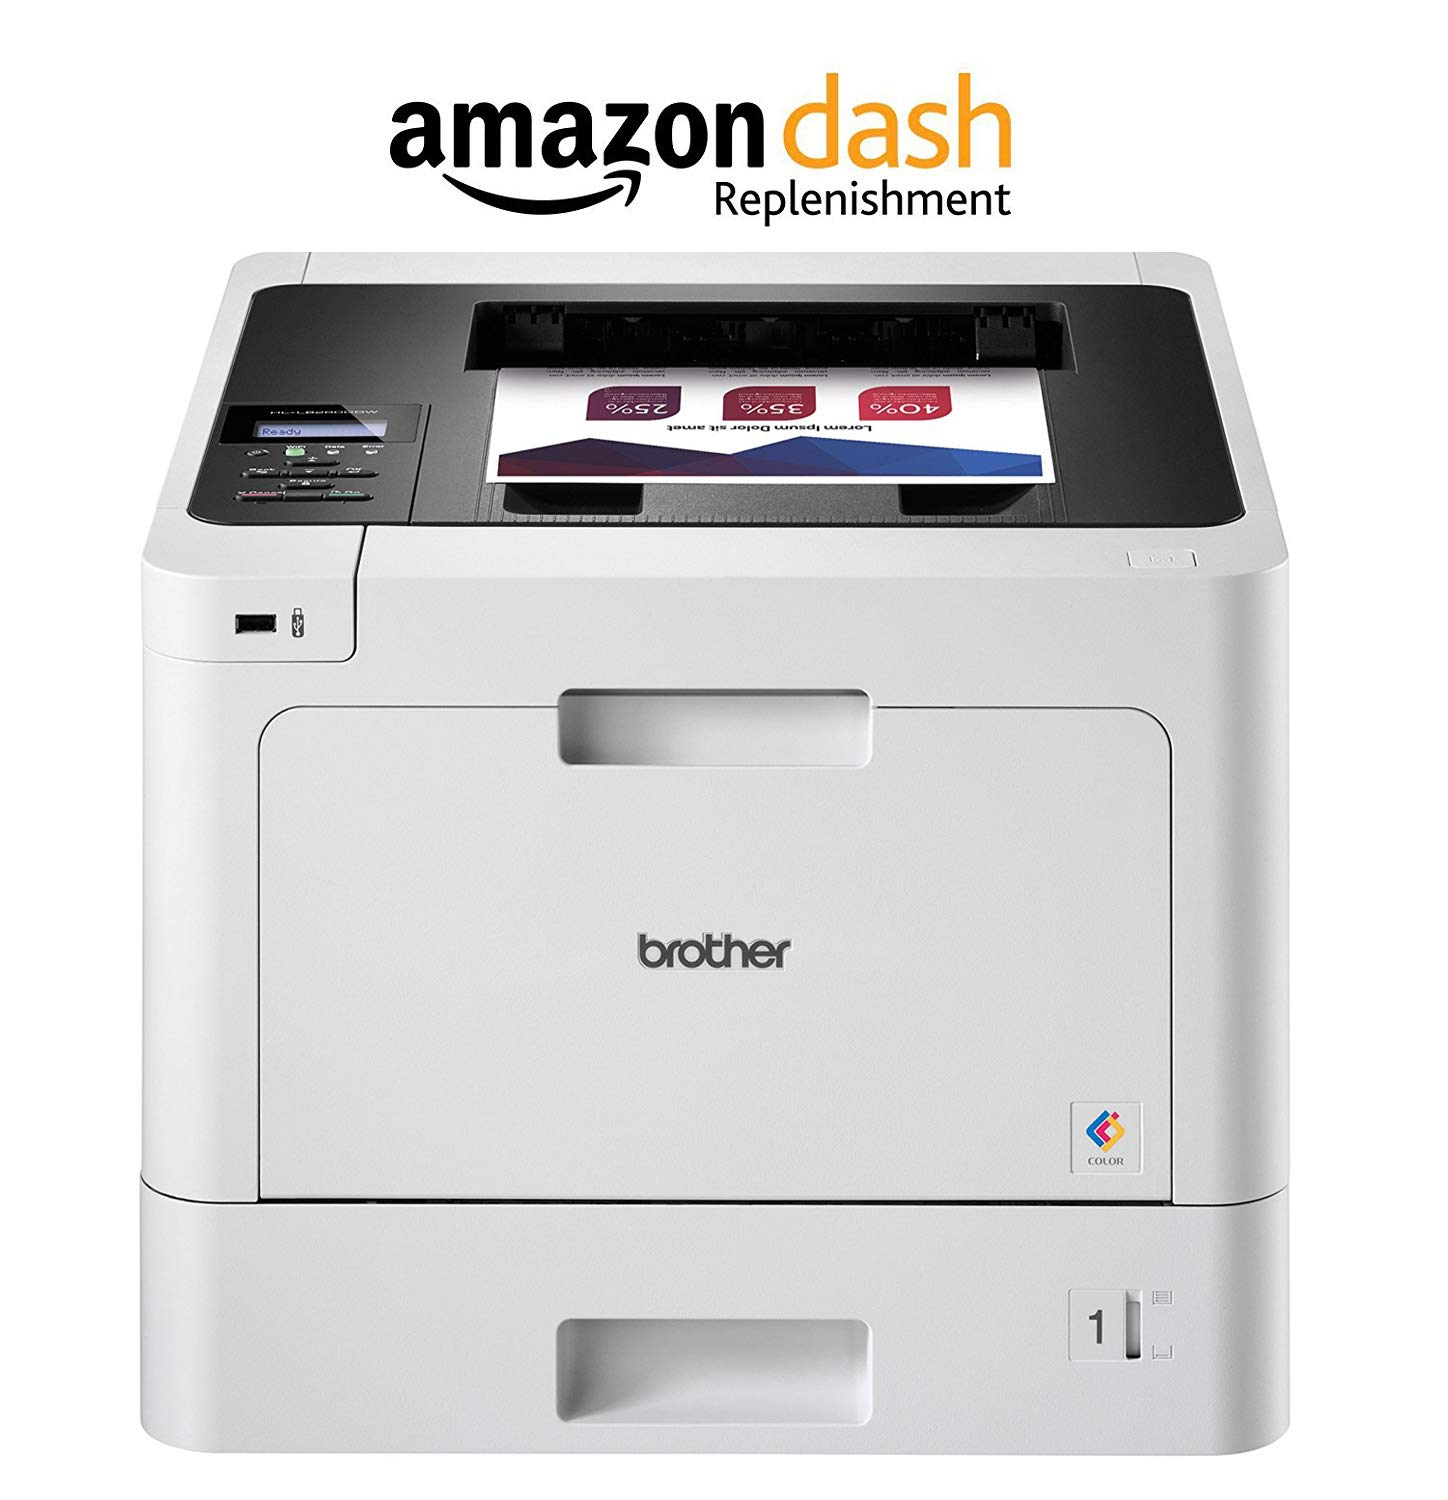 Amazon.com: Brother HL-L8260CDW Business Color Laser Printer, Duplex  Printing, Flexible Wireless Networking, Mobile Device Printing, Advanced  Security ...